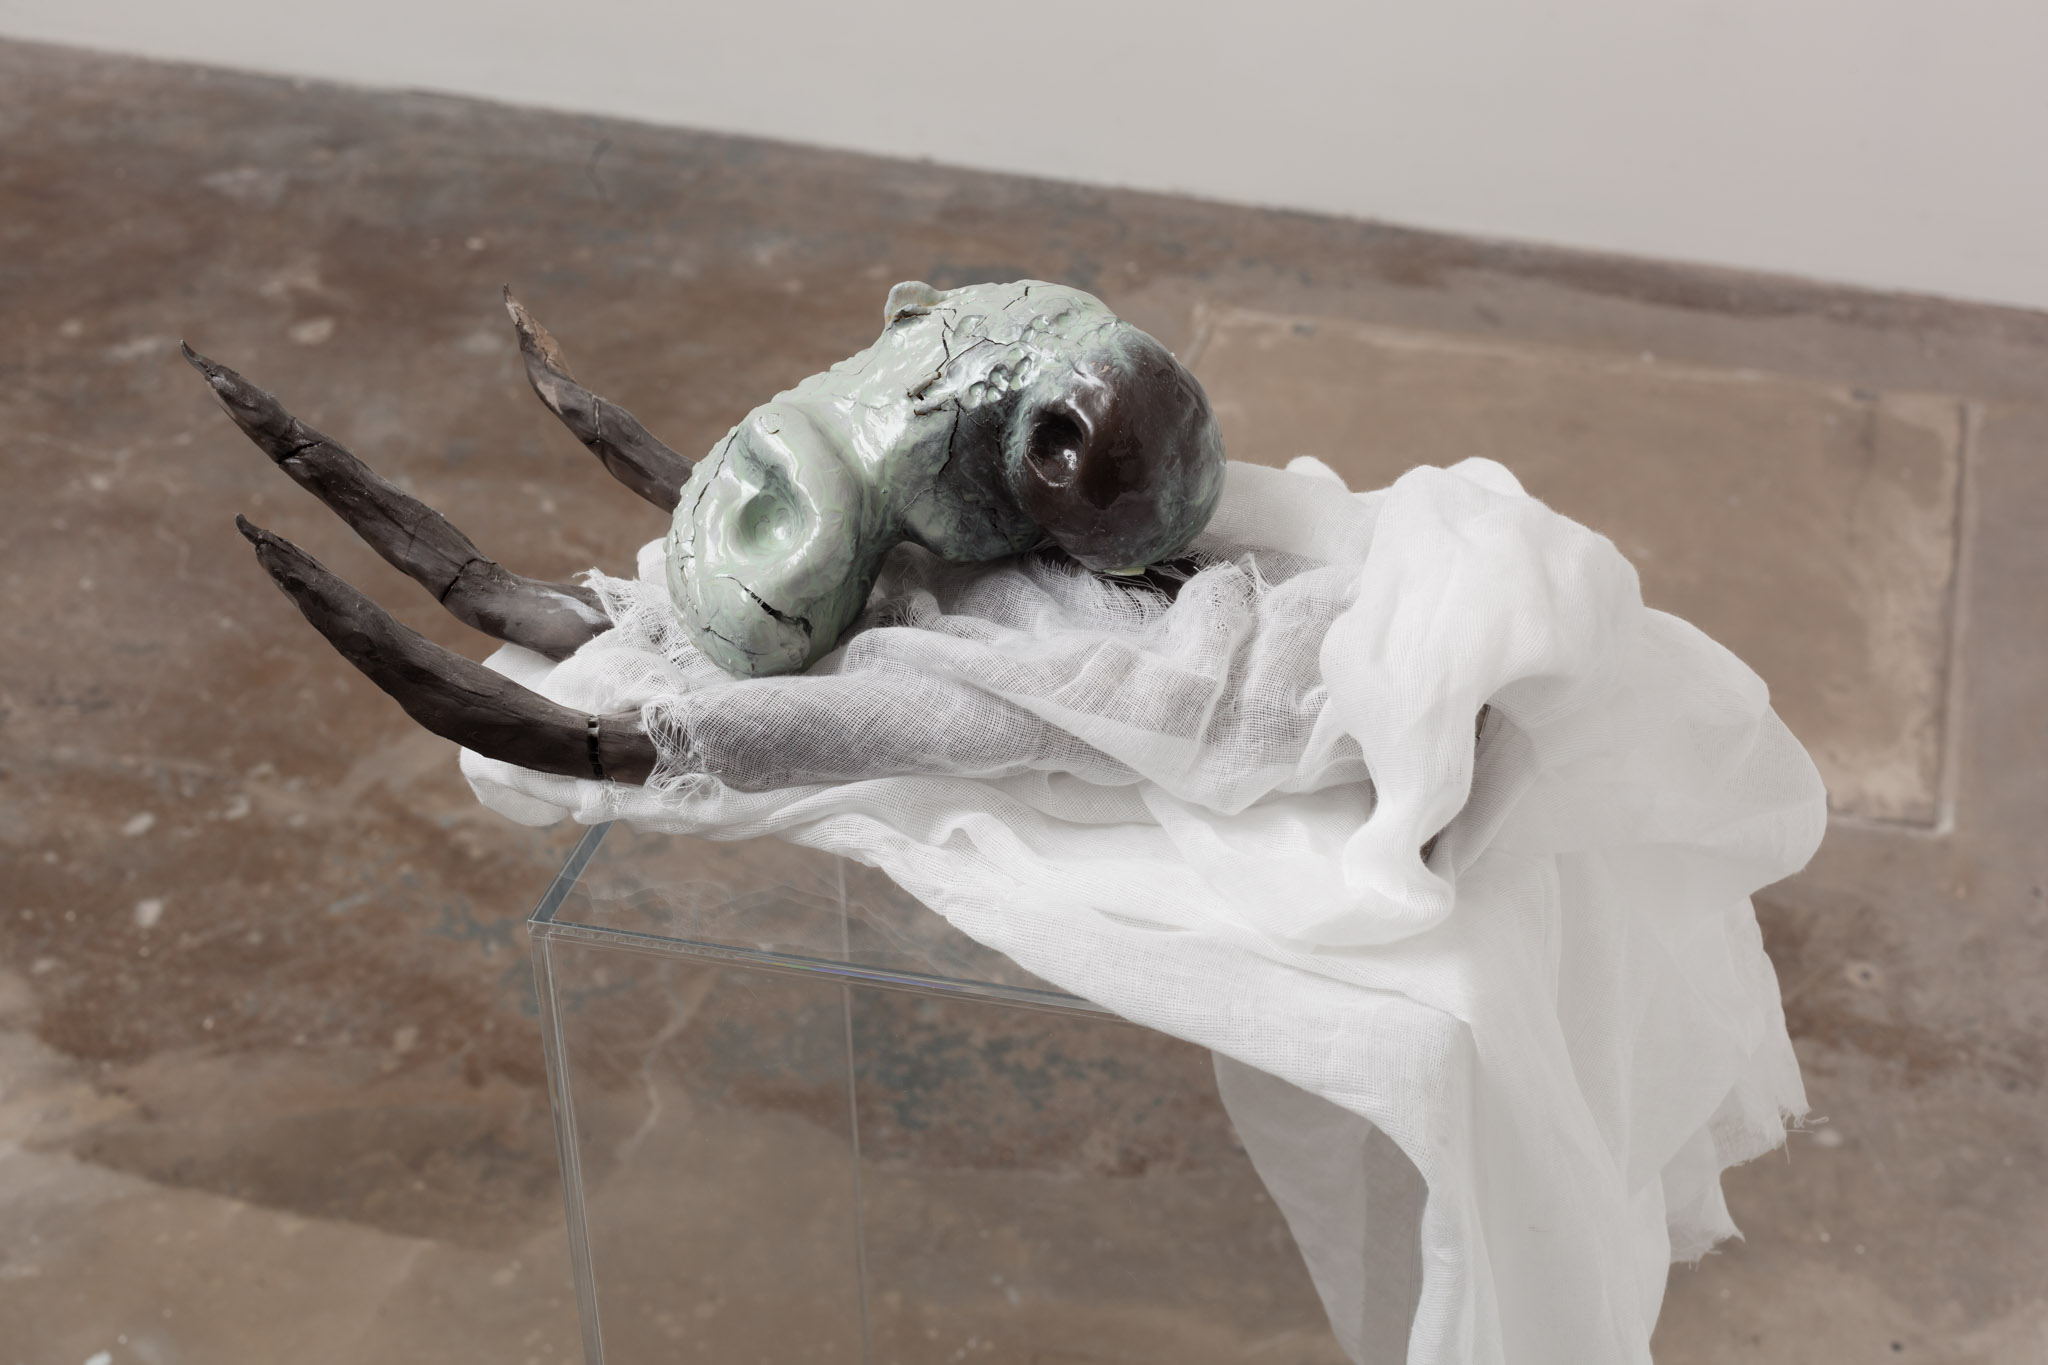 Claw with Offering, 2014, Clay, steel, muslin, resin, gourd, plexiglass, 120 cm x 30 cm x 48 cm, 47.2 x 11.8 x 18.8 ins. 'FRACKING' , José Rojas